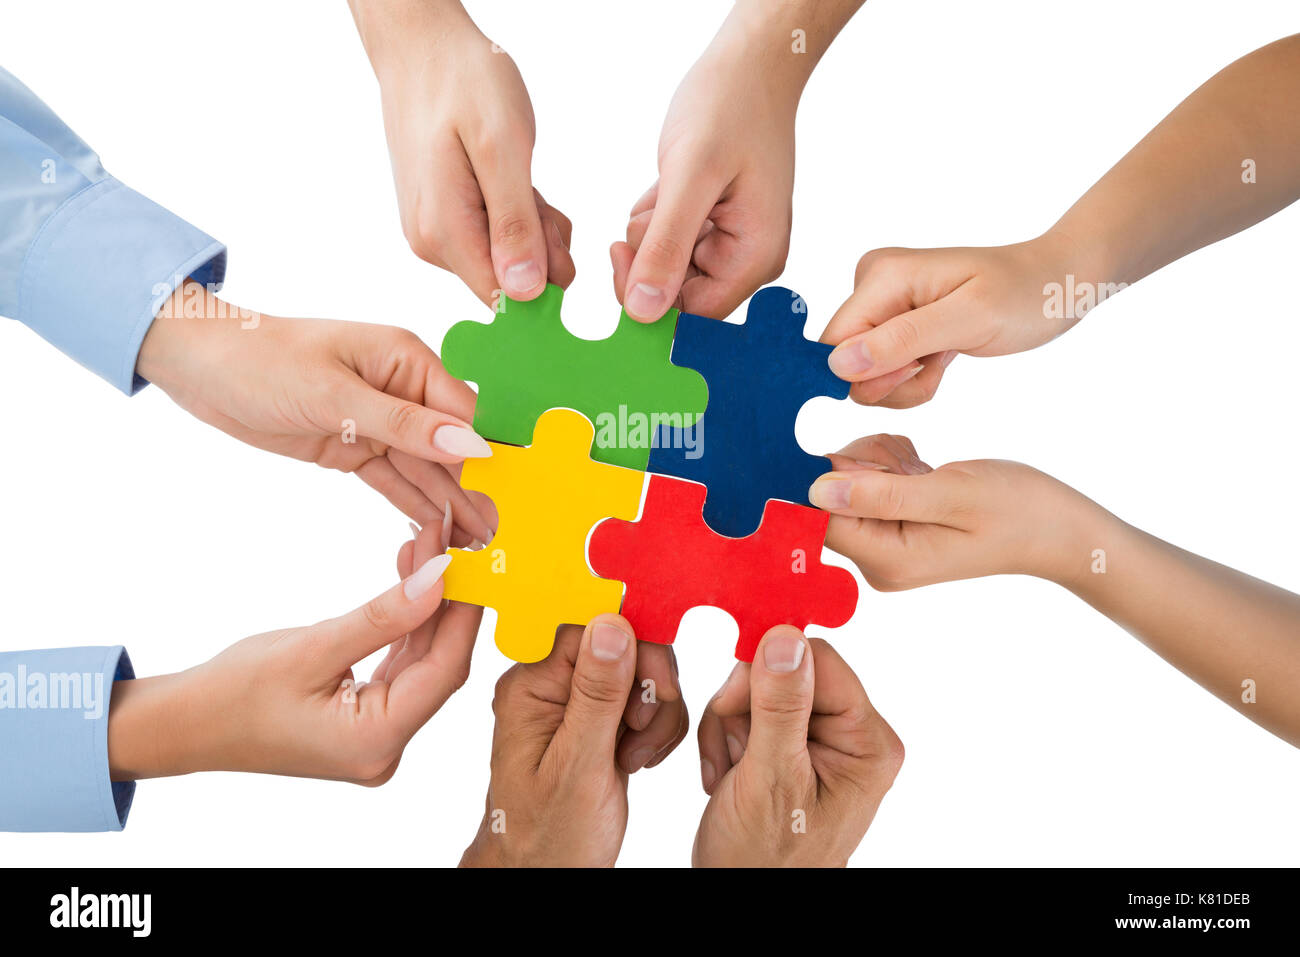 Close-up Of People Hands Holding Jigsaw Pieces Over White Background - Stock Image